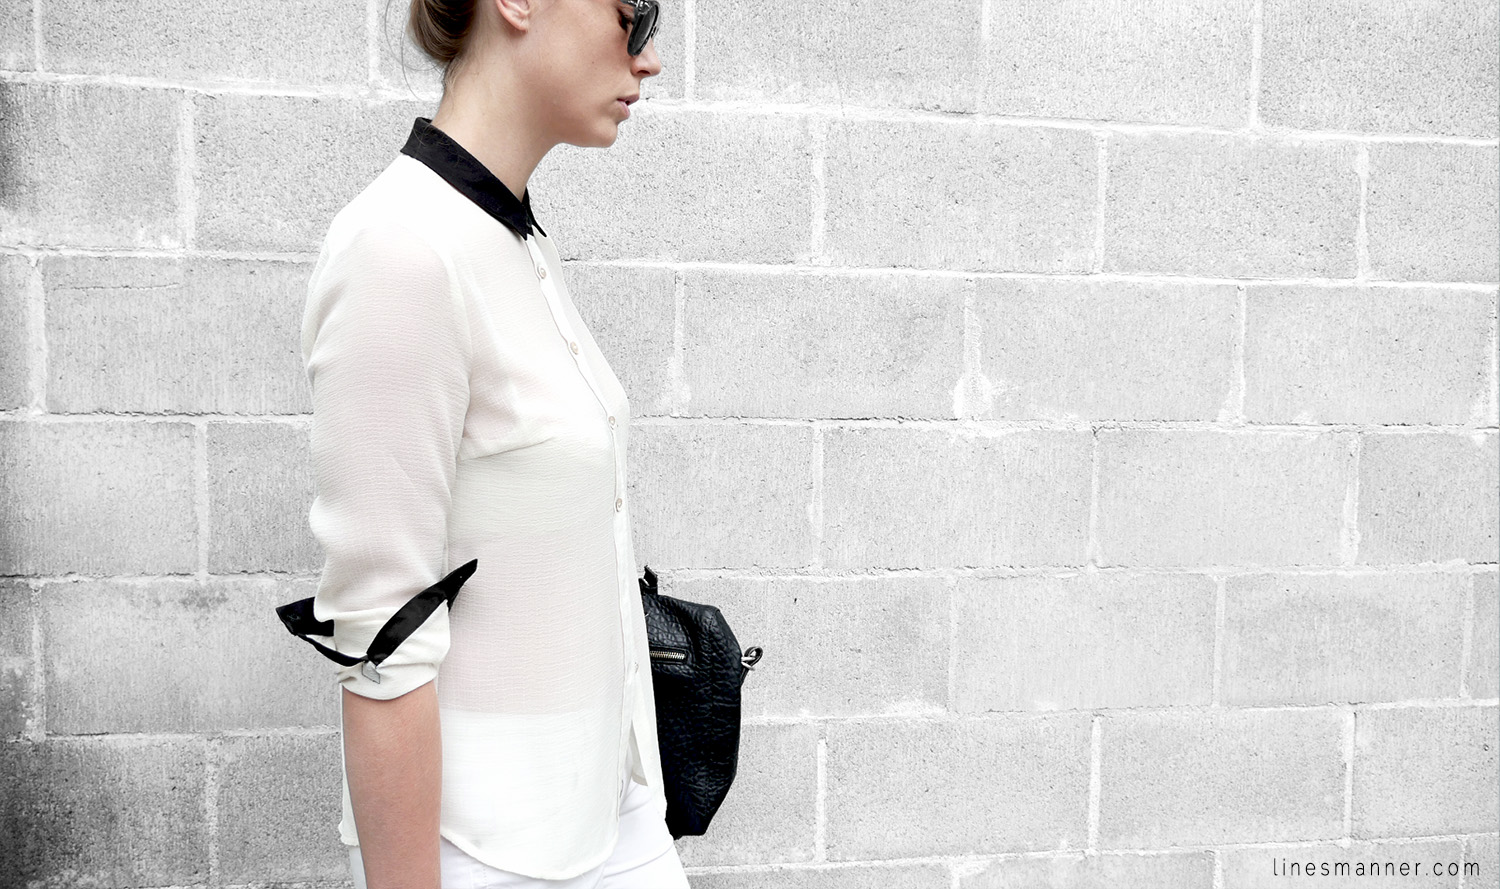 Lines-Manner-Remind-2015-Minimal-Essential-Outfit-Inspiration-Blog-Timeless-Year-Seasons-Details-Travel-Fashion-Versatile-Clean-Sleek-Quality-49